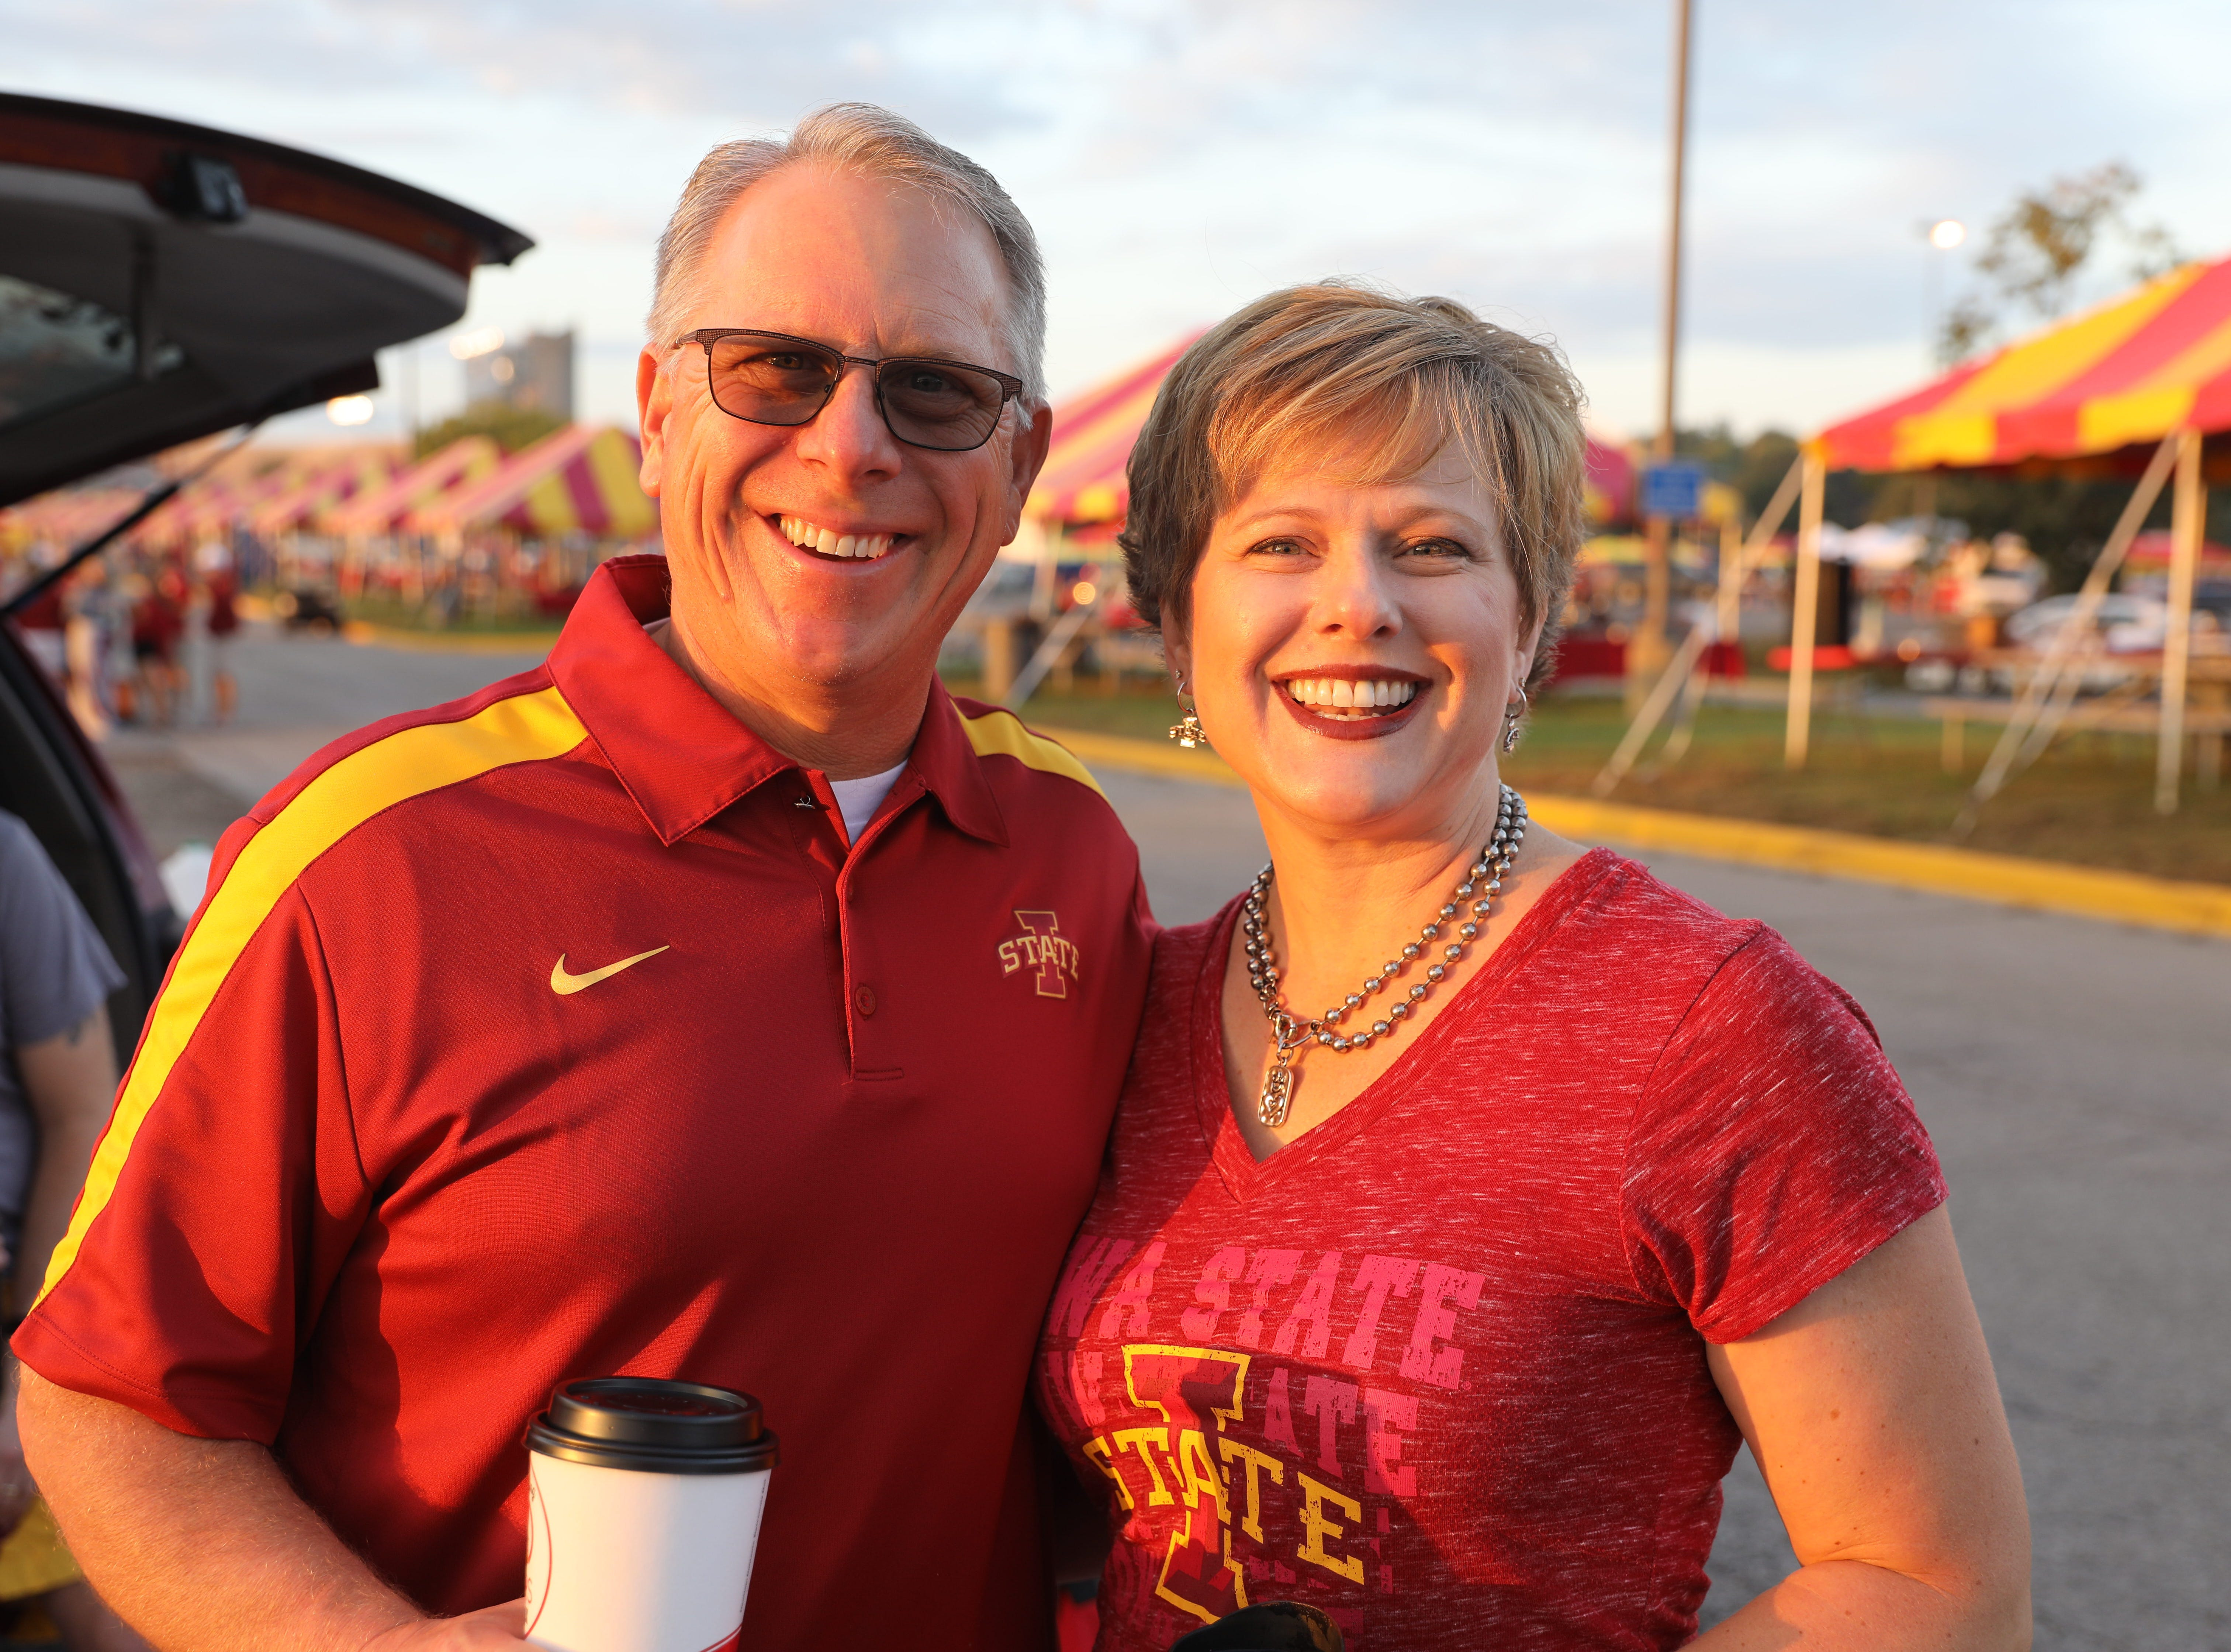 John and Kim Grzywacz of Huxley Saturday, Sept. 15, 2018, before the Iowa State football game against Oklahoma in Ames.